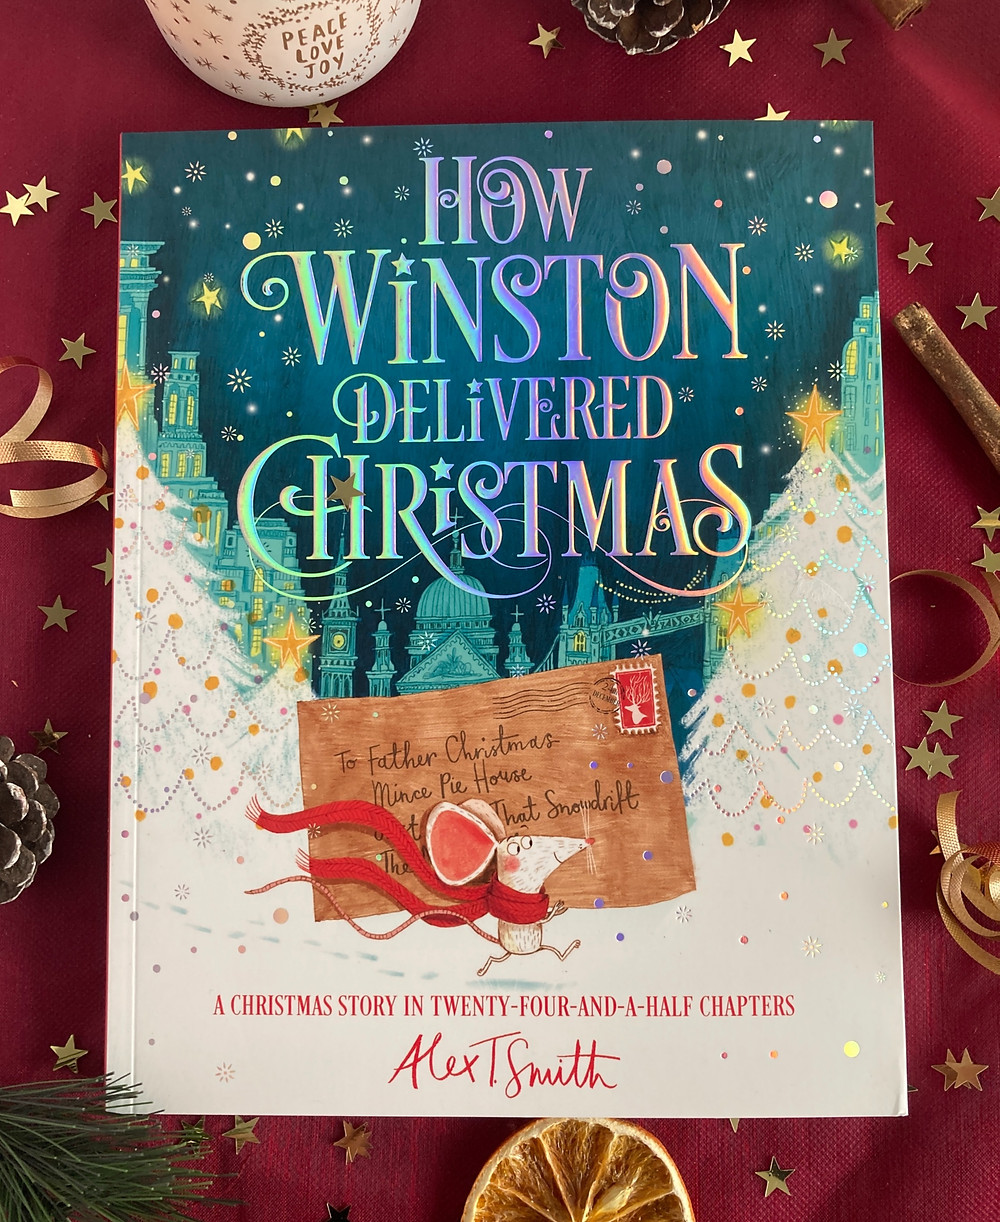 Cover of the book 'How Winston Delivered Christmas'